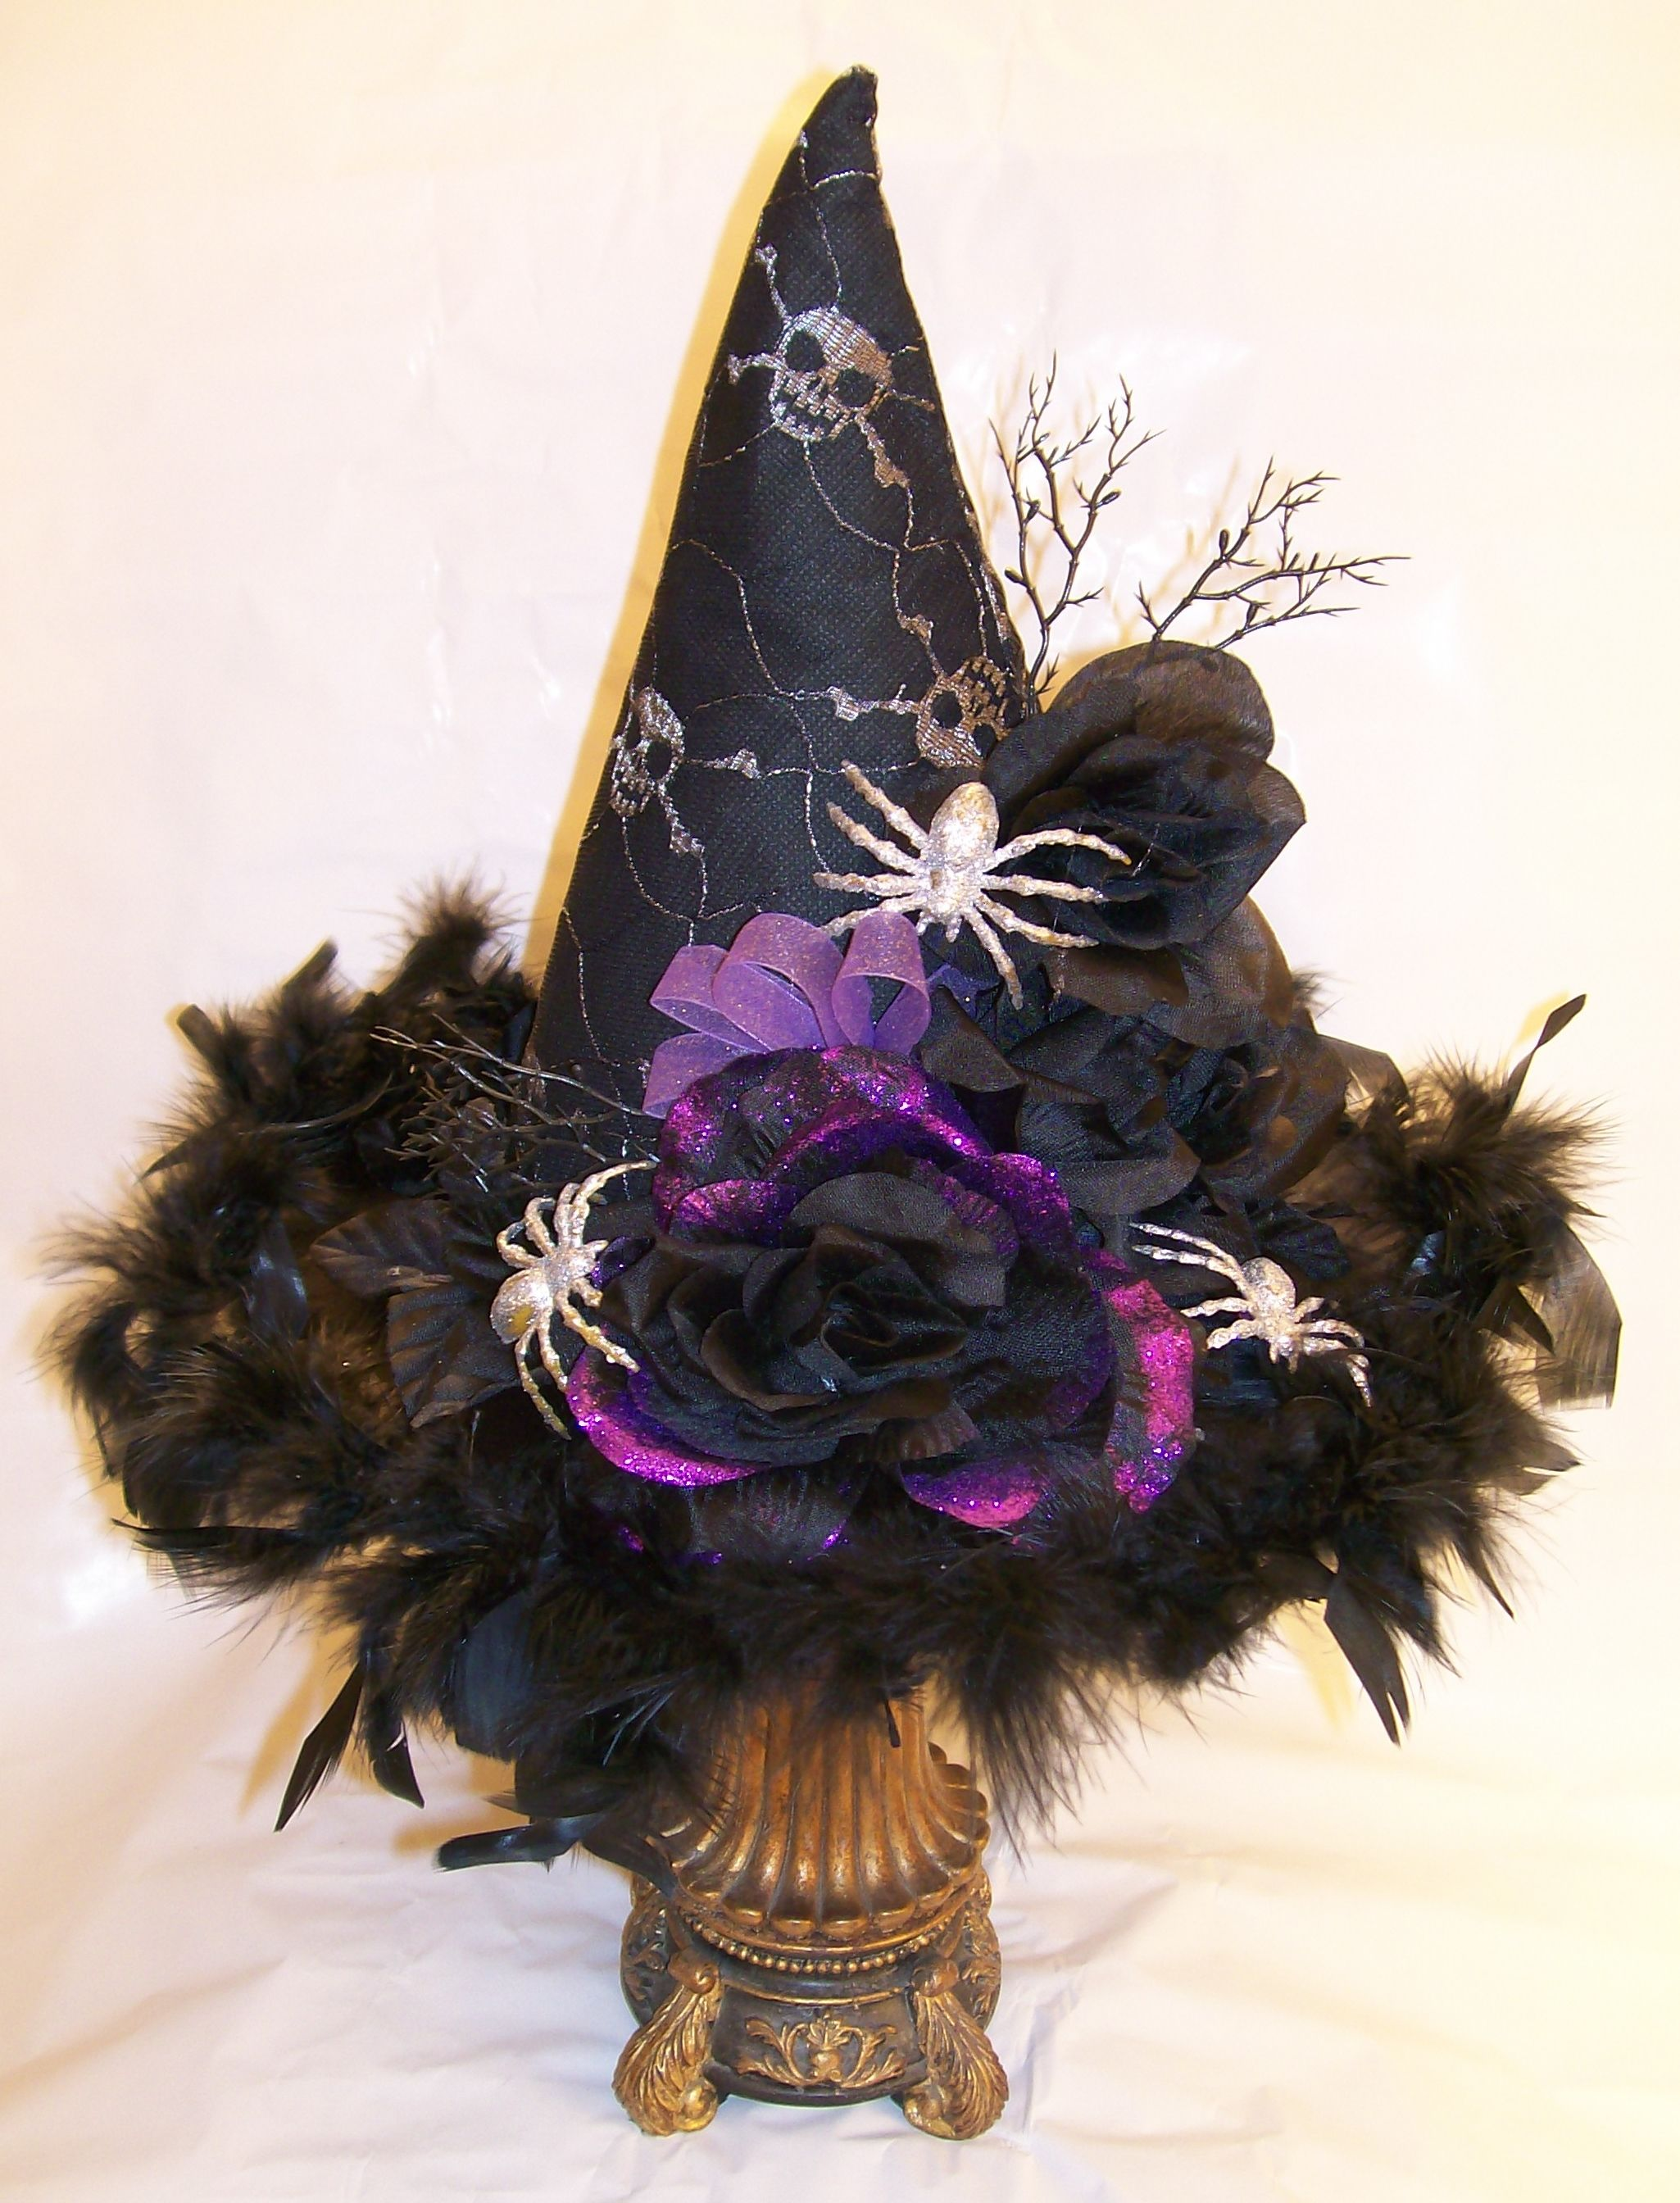 Halloween Witches Hat All Material And Elements Purchased At The Dollar Tree Store 4 00 To Make Halloween Crafts Halloween Diy Witch Hat Diy